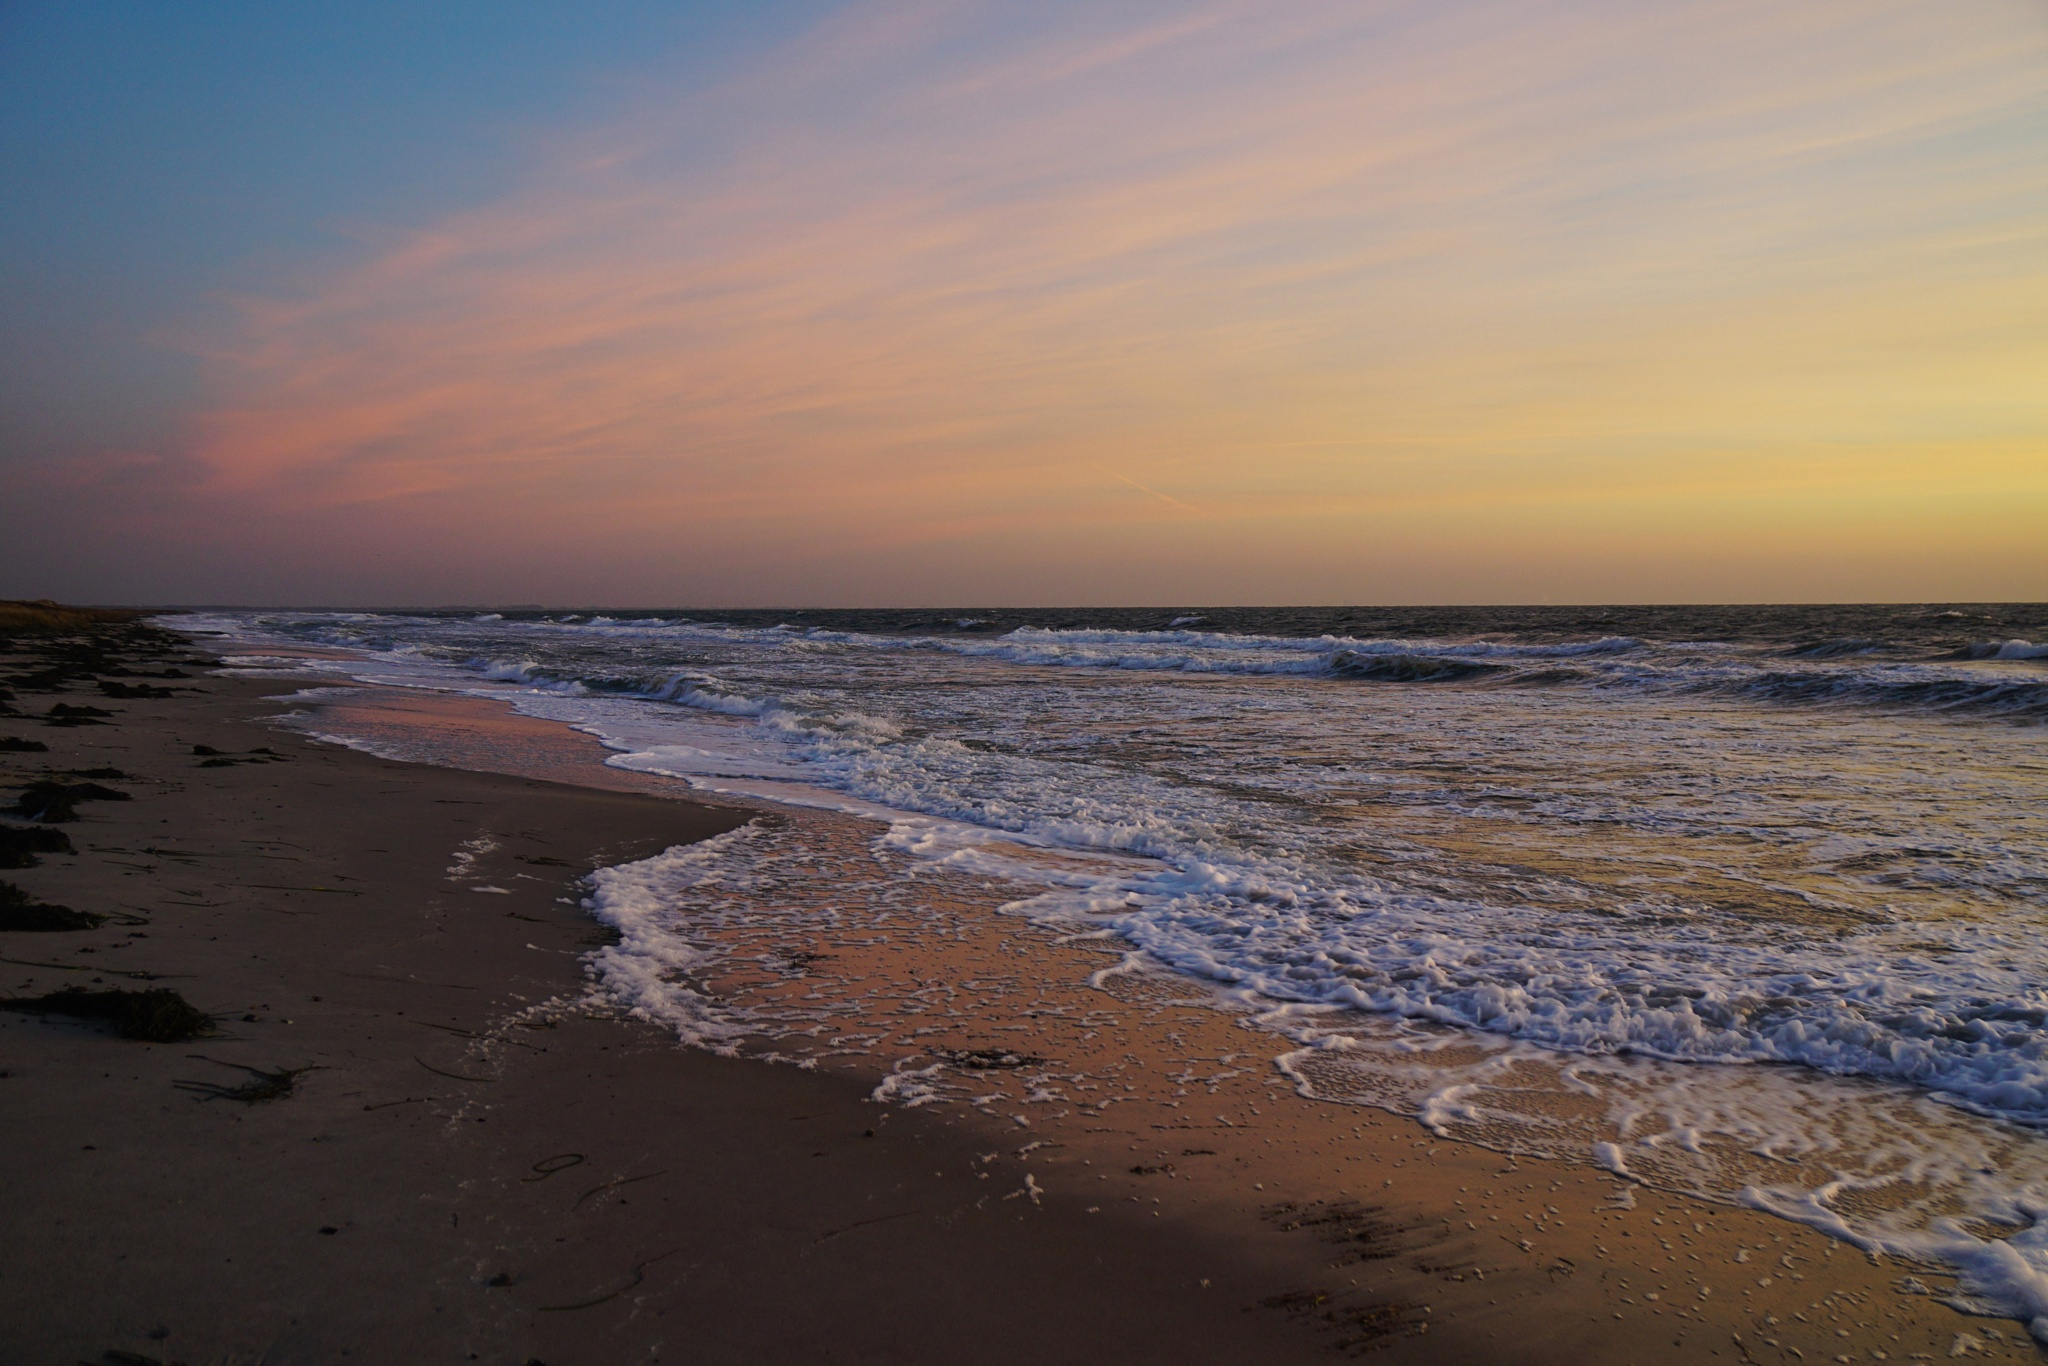 Before sunrise at the beach by Dorte Hedengran